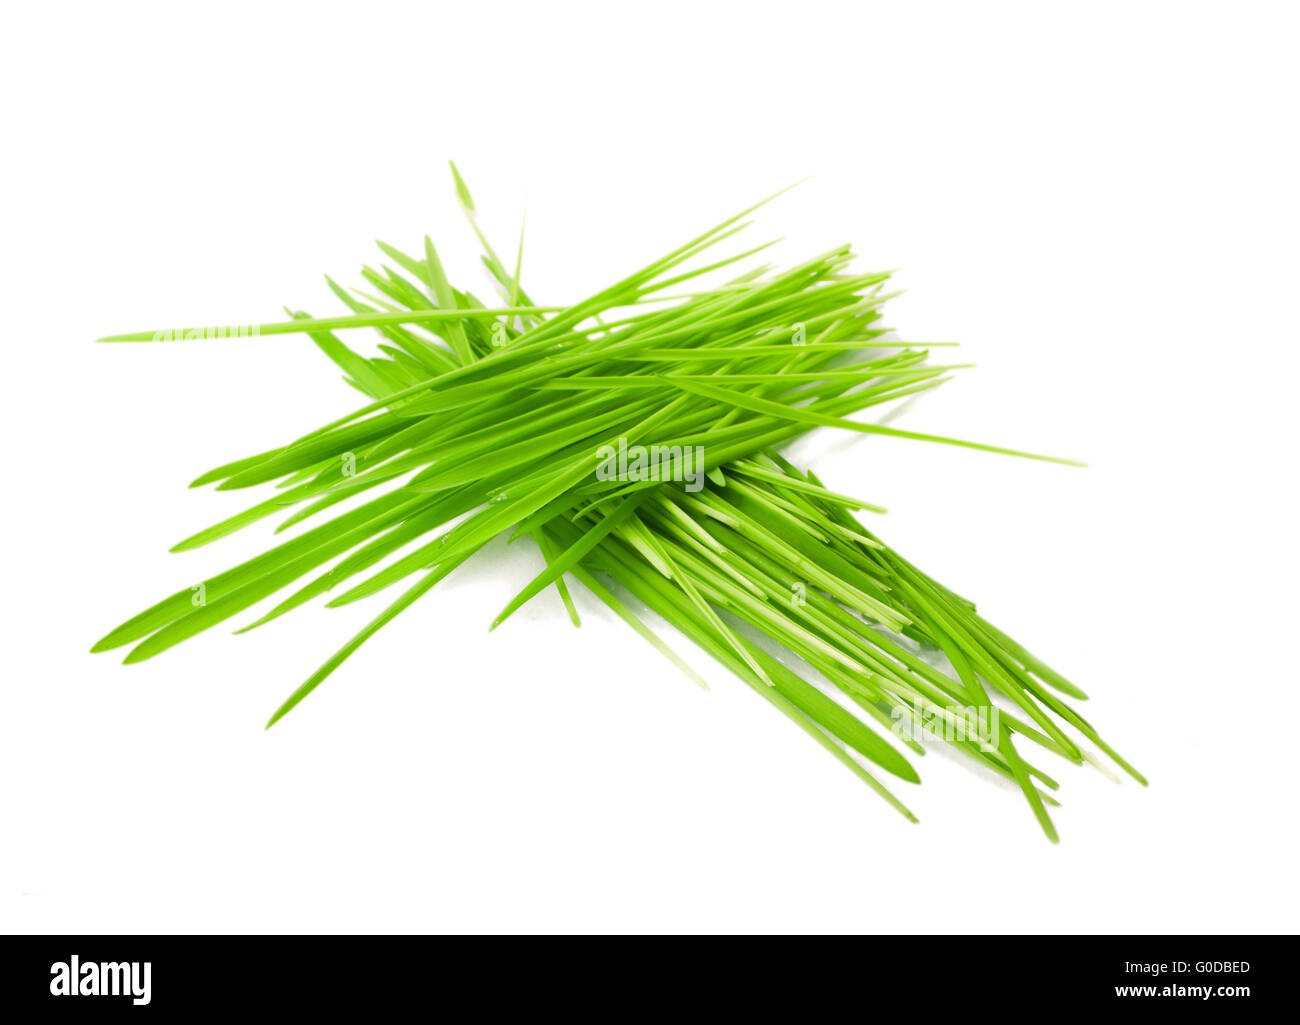 green grass in bundles isolated on white background - Stock Image